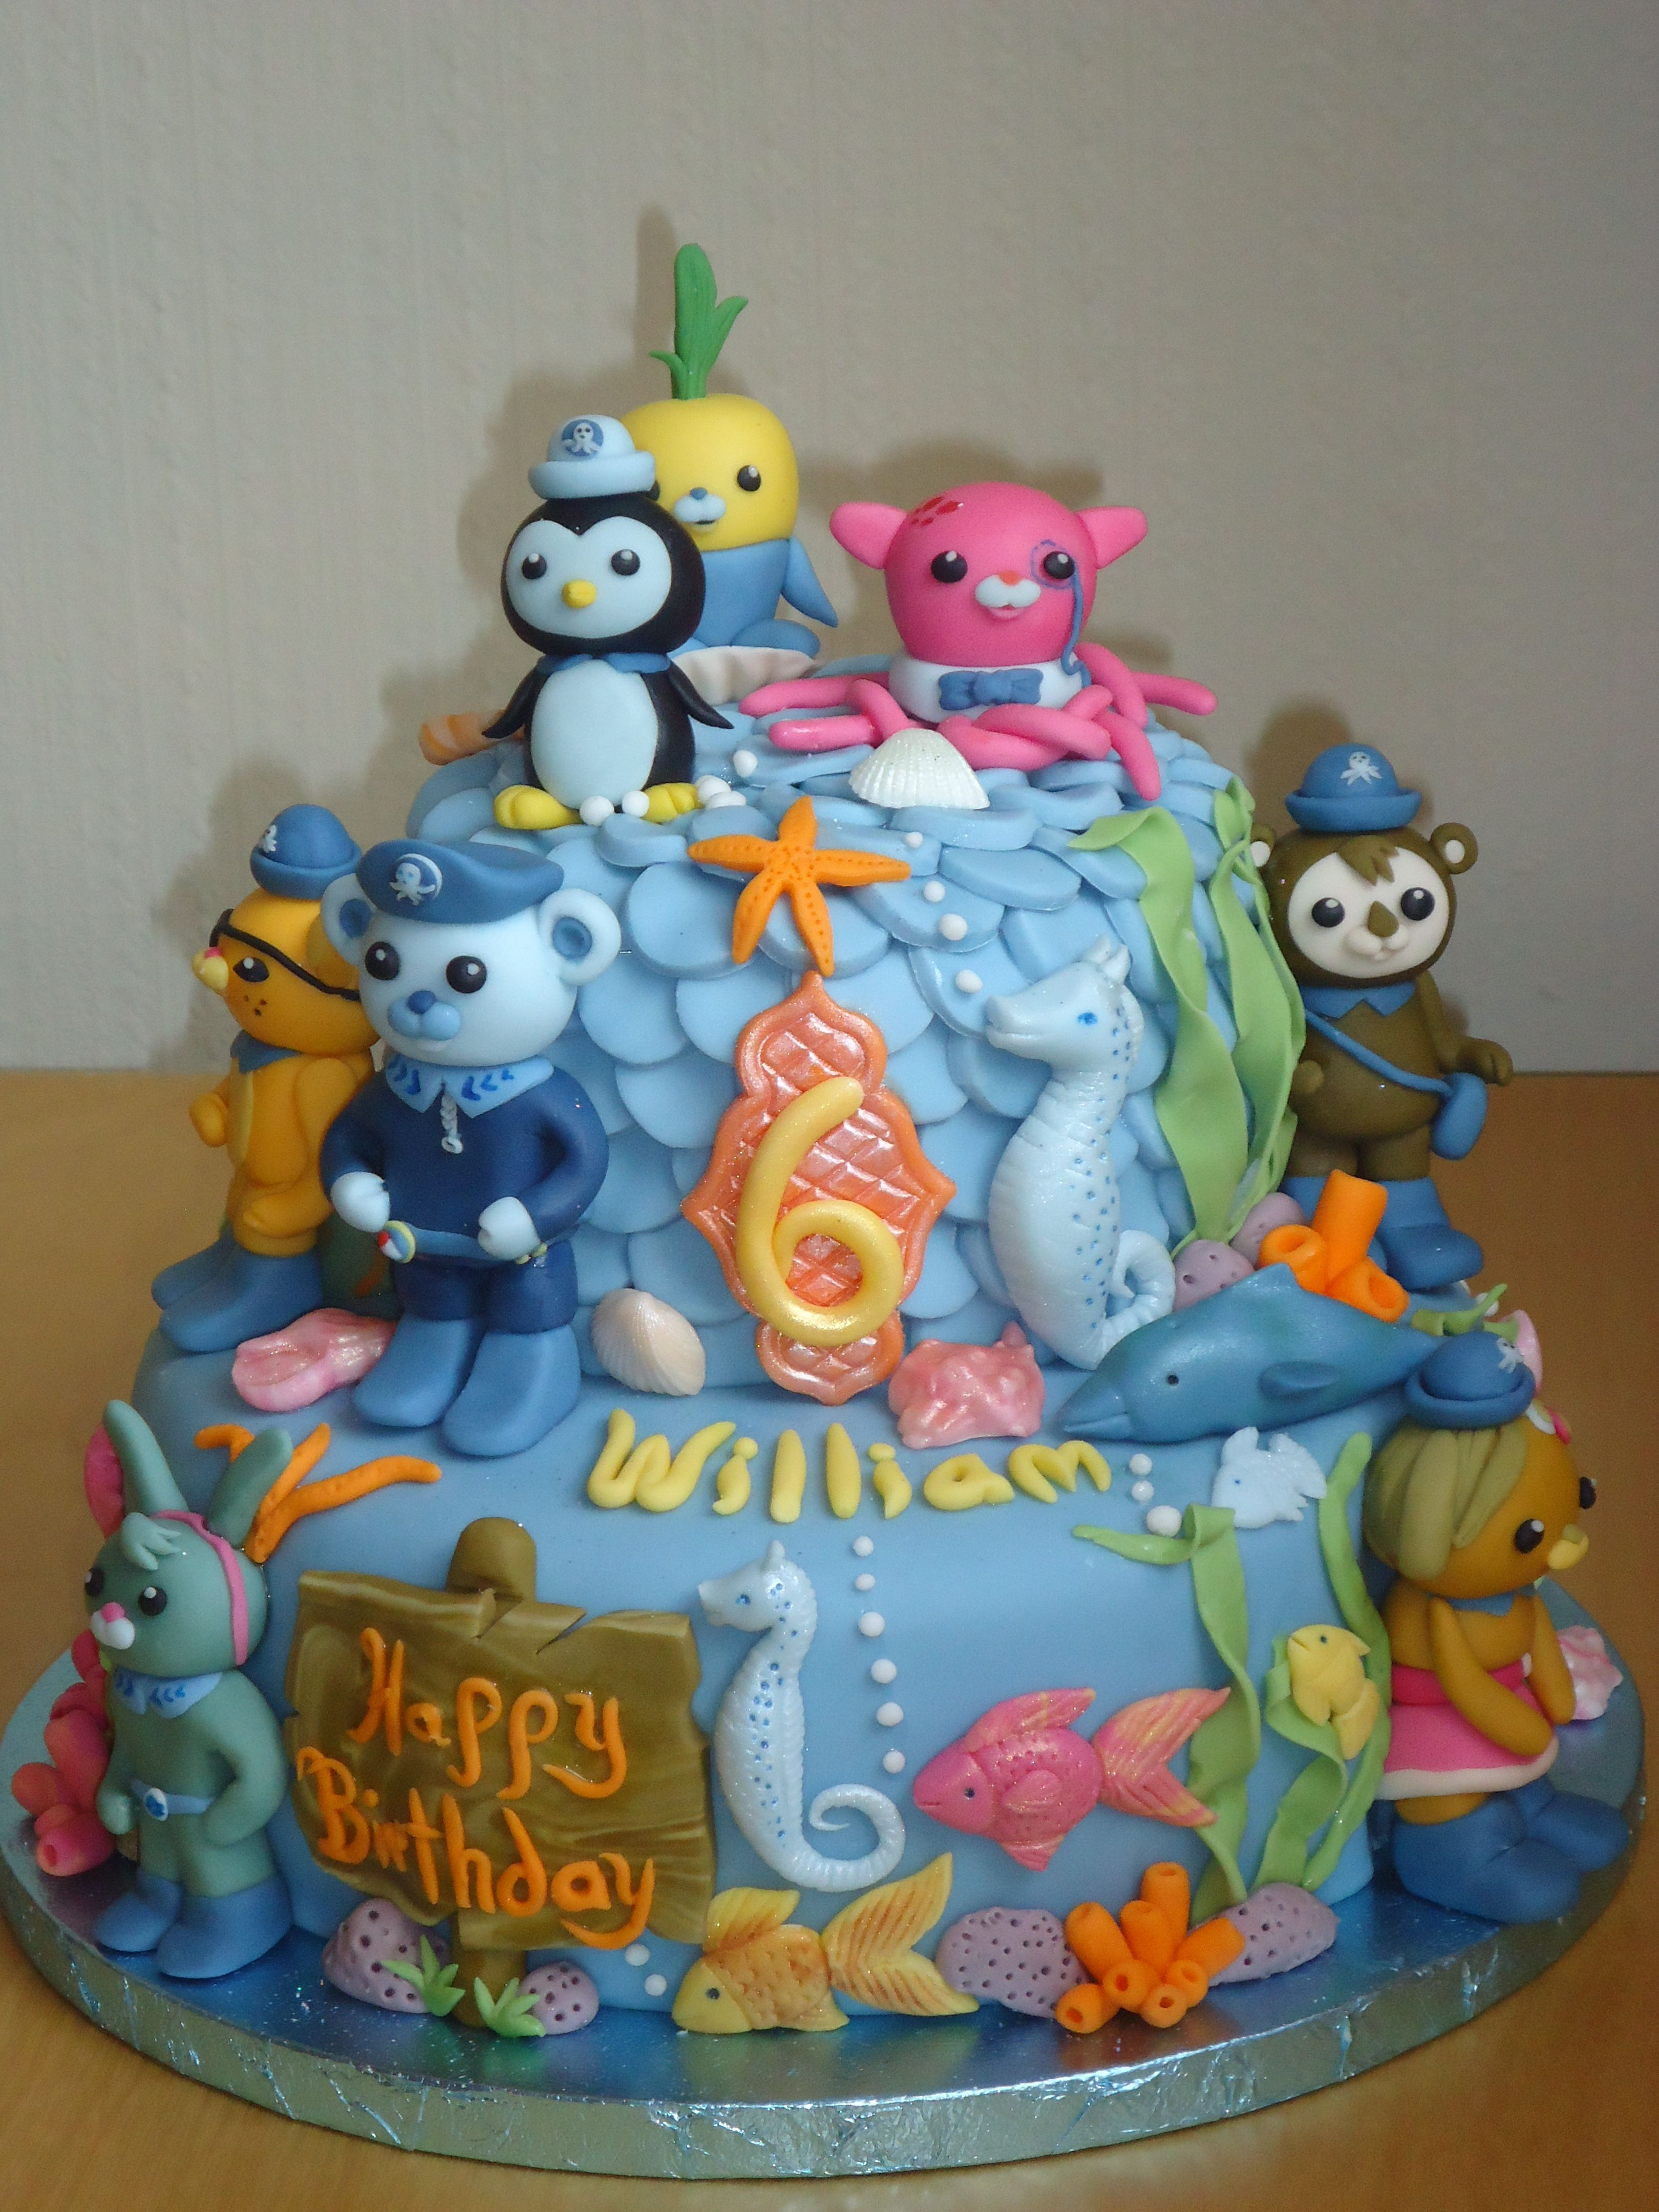 Octonauts Birthday Cake good view of Shellington and Capt